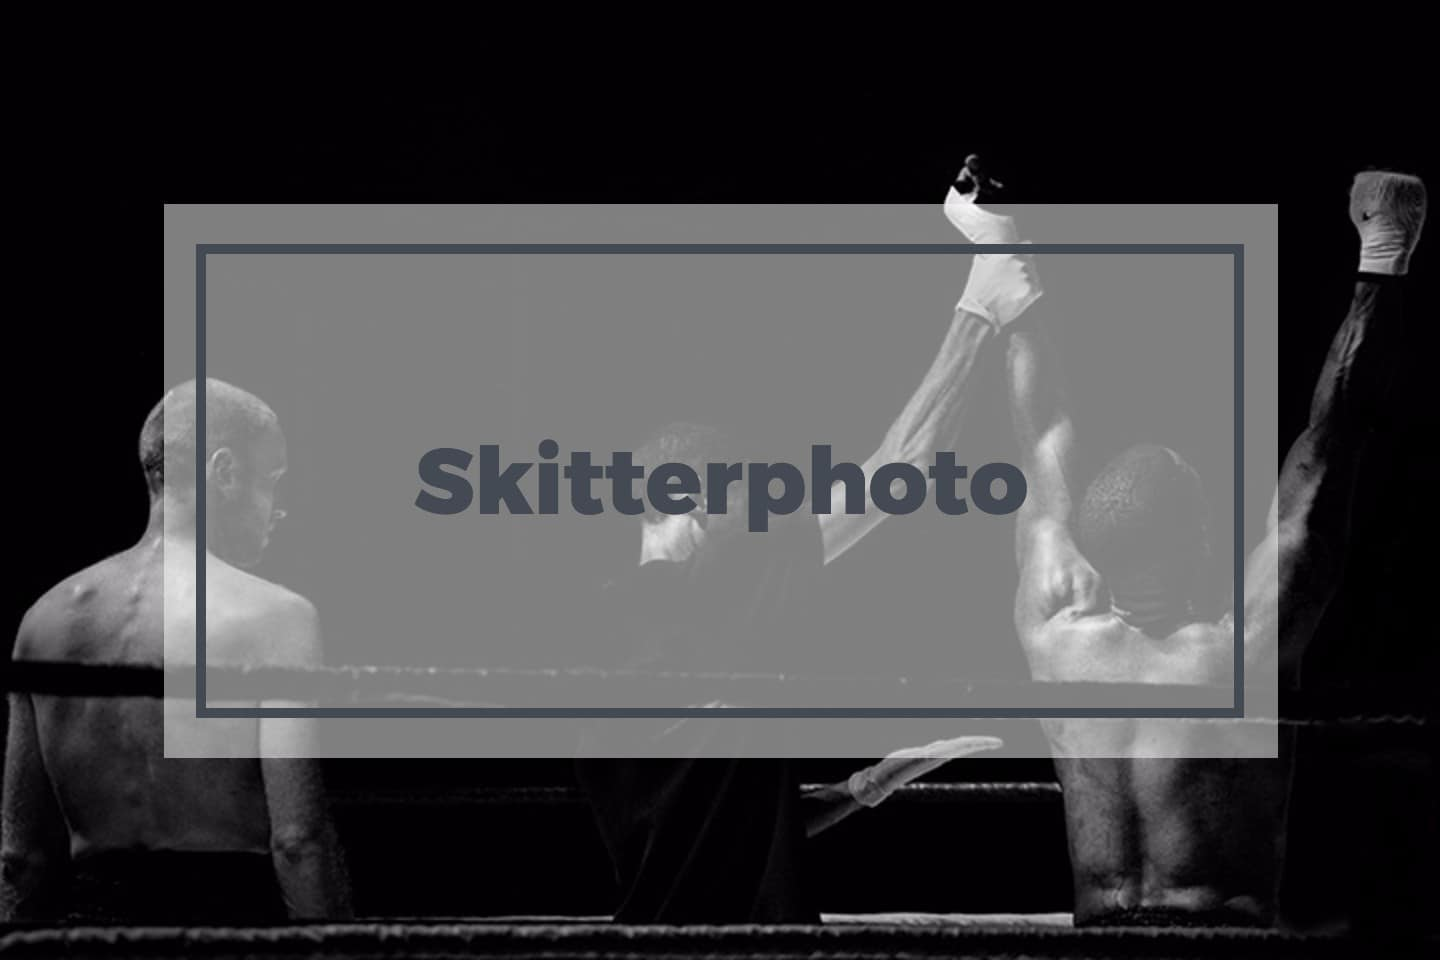 Skitterphoto free stock photos